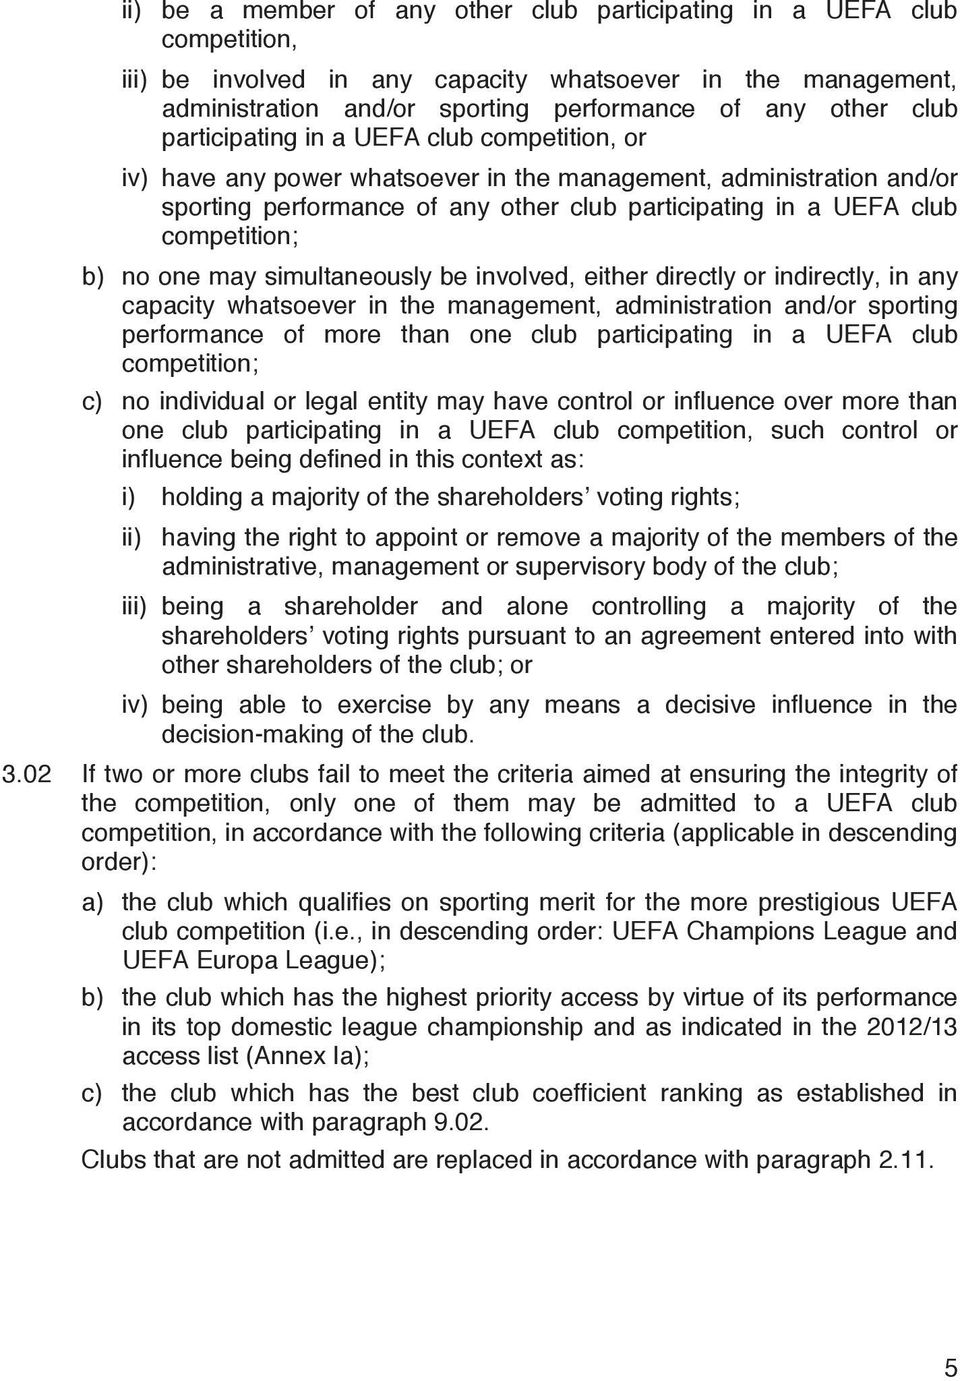 no one may simultaneously be involved, either directly or indirectly, in any capacity whatsoever in the management, administration and/or sporting performance of more than one club participating in a